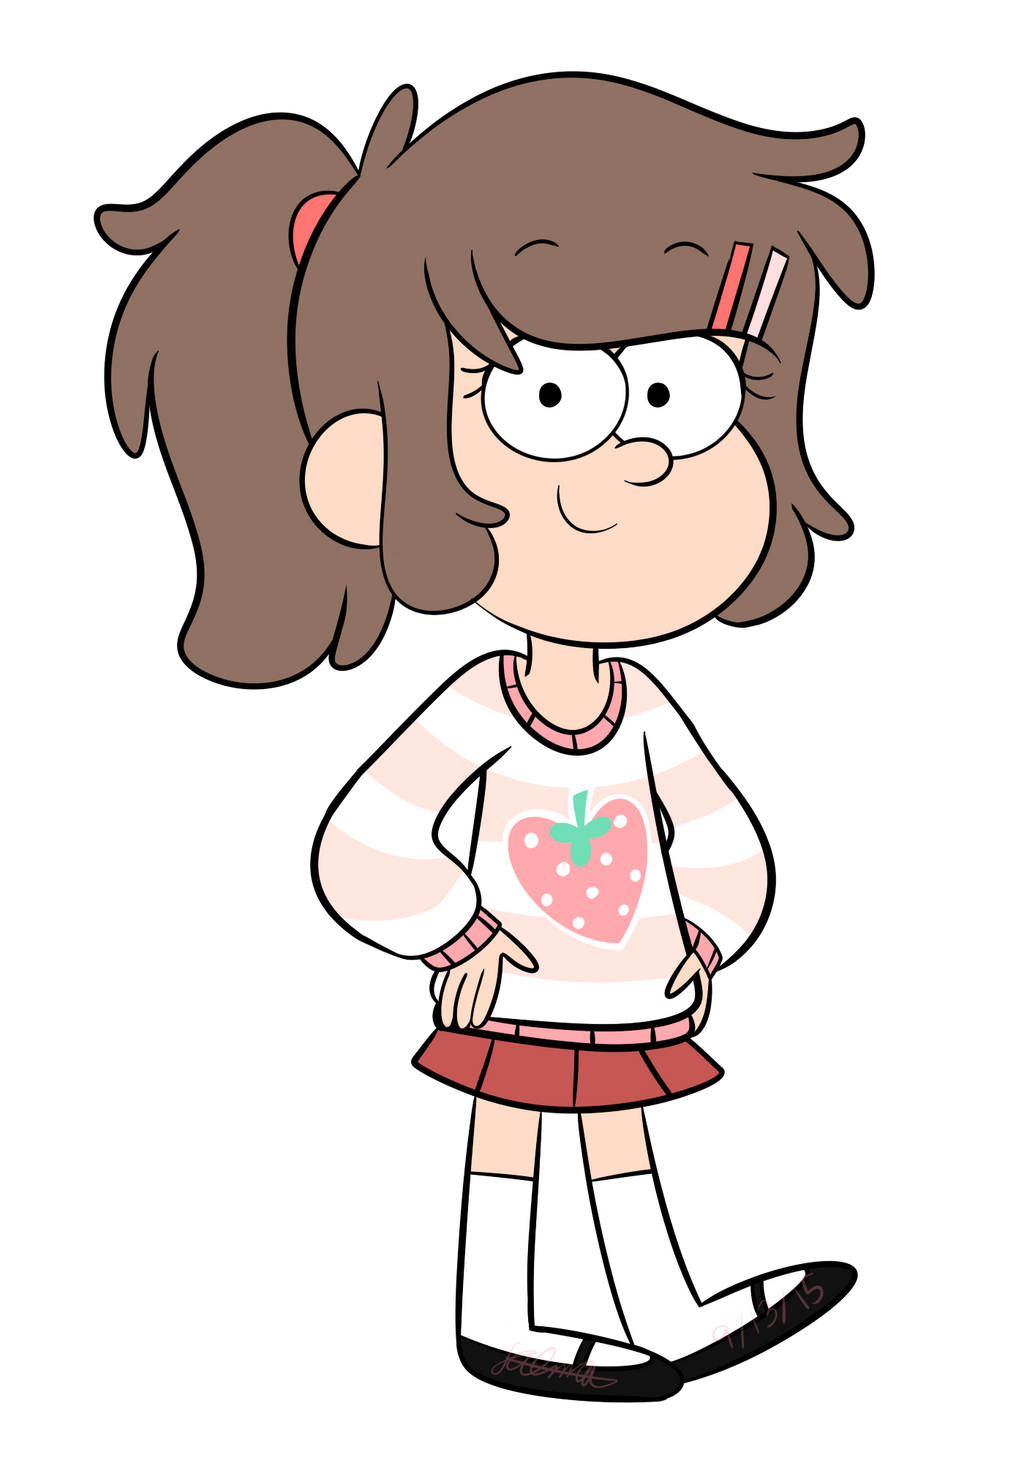 Oc Chloe Haimes First Look In Gravity Falls By